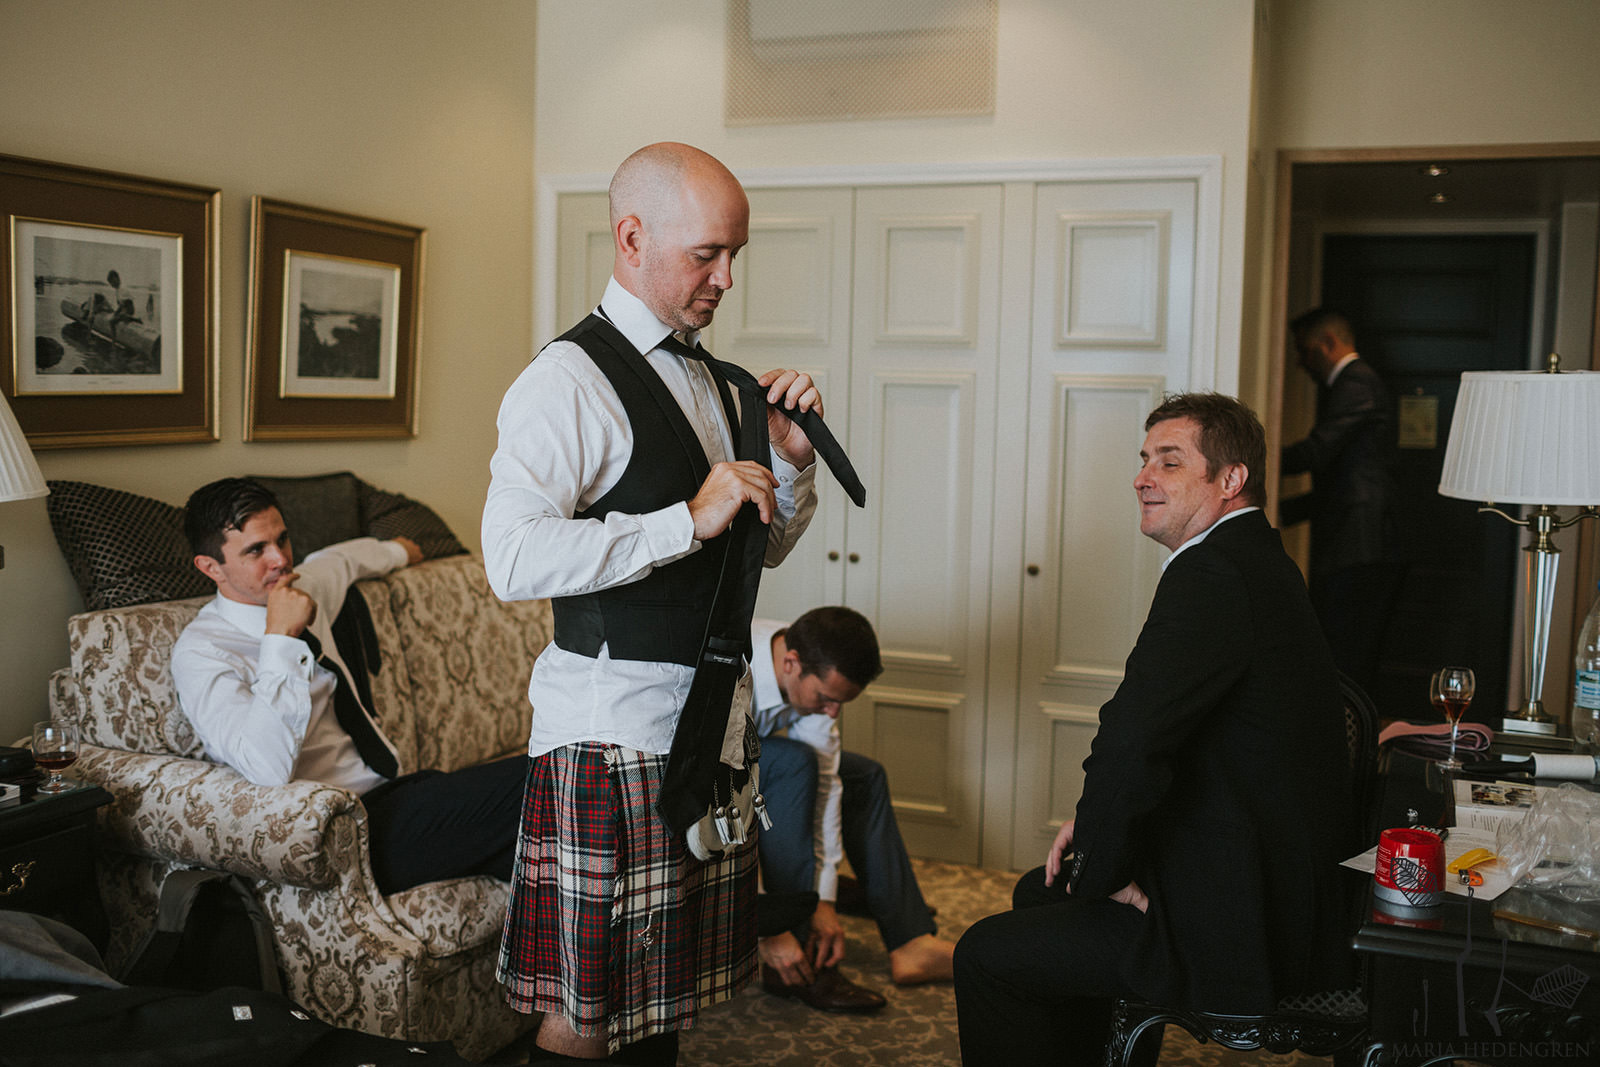 scottish wedding finland